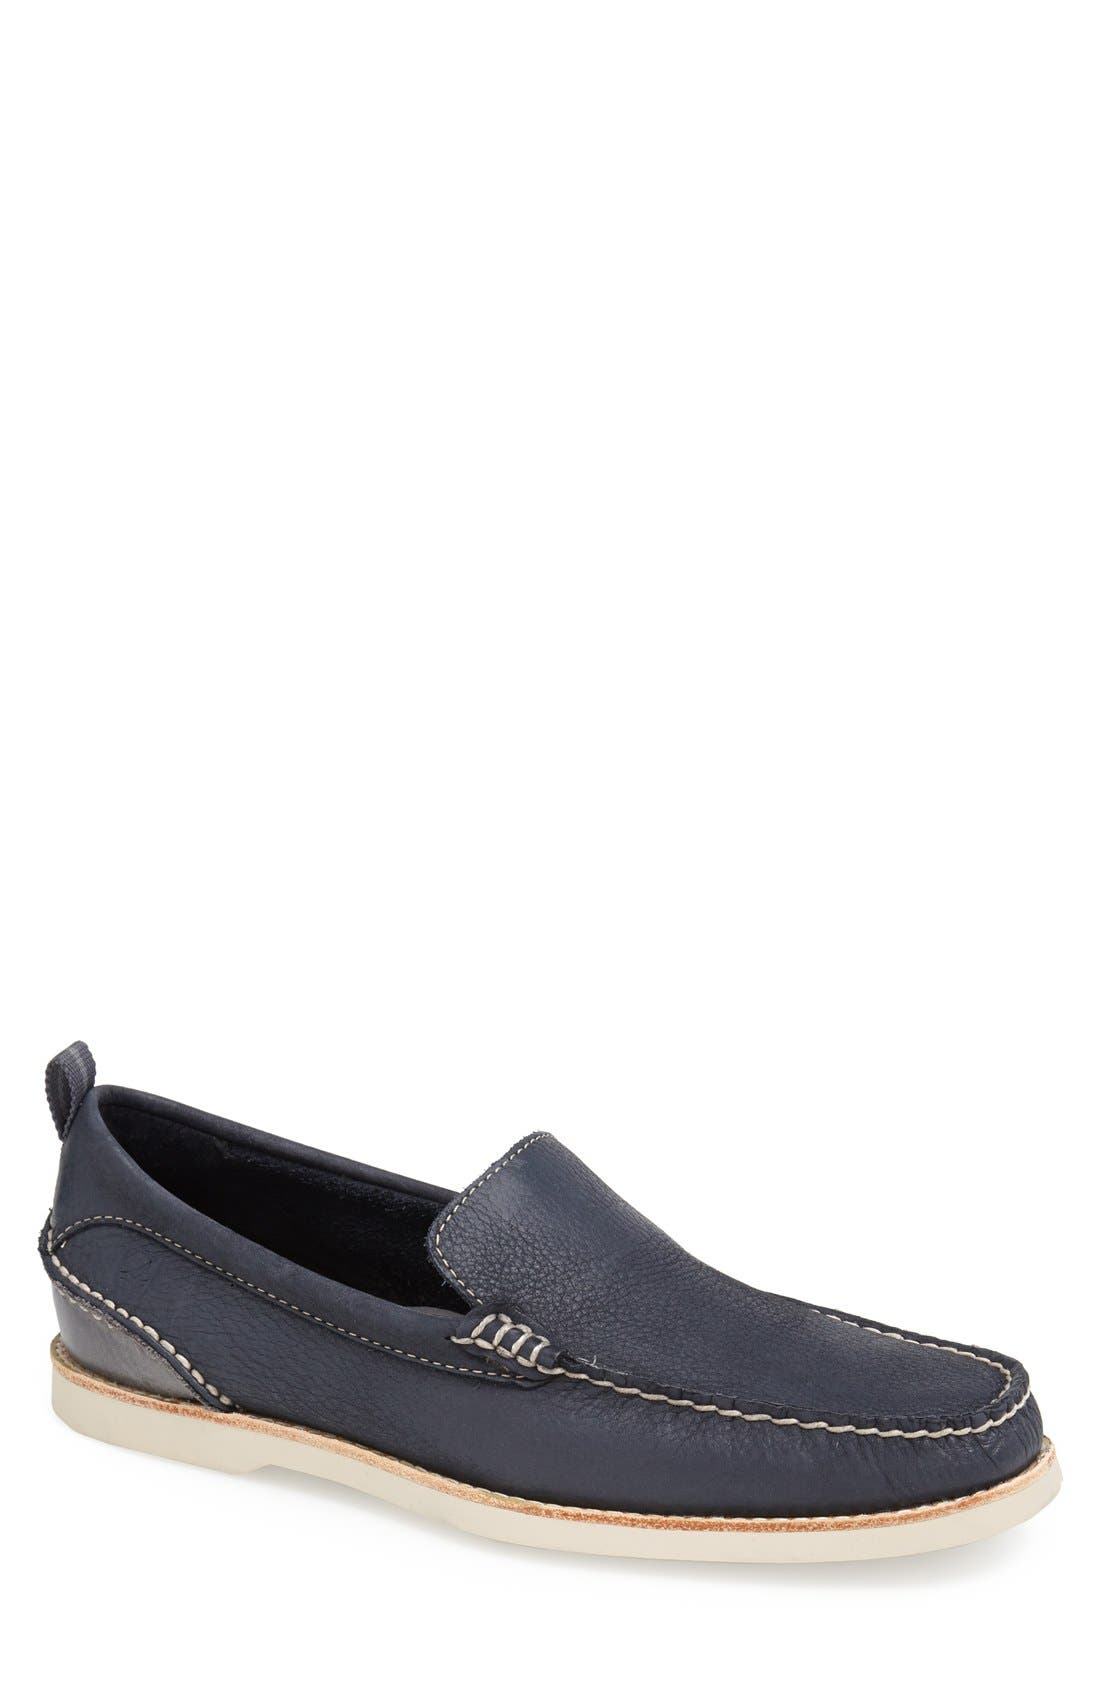 Alternate Image 1 Selected - Sperry Top-Sider® 'Seaside' Loafer